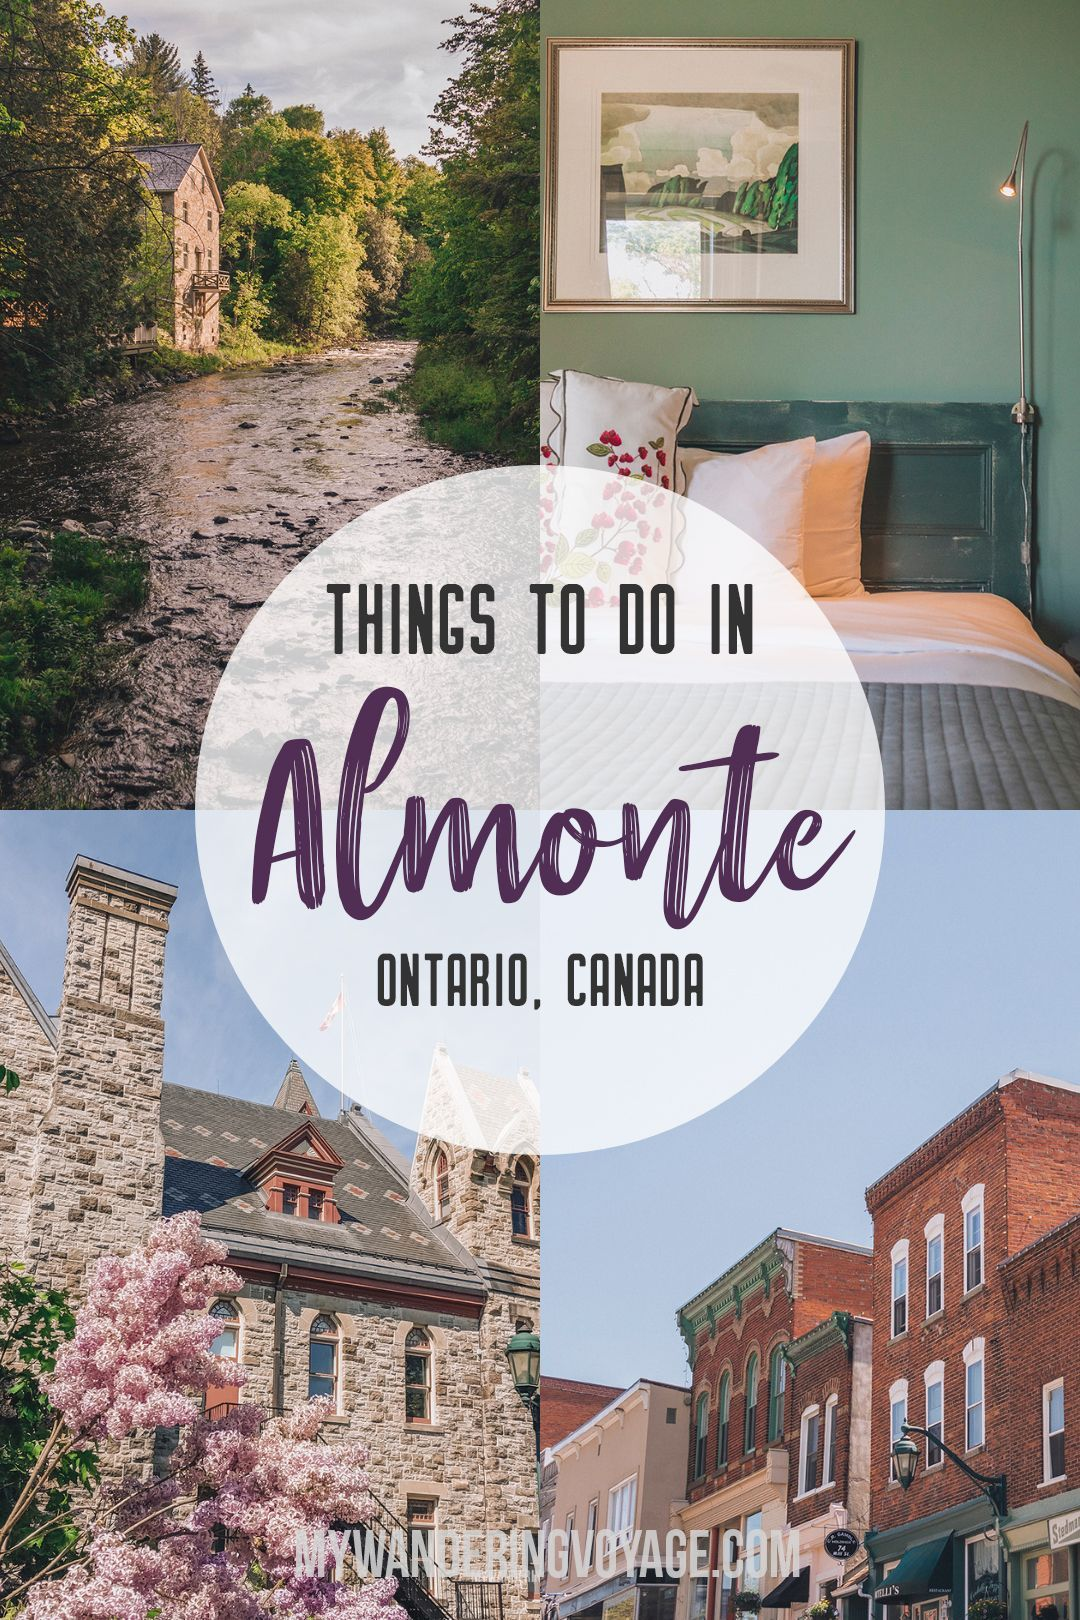 Discover the best things to do in Almonte Ontario for a perfect Canadian summer weekend. | My Wandering Voyage travel blog #AlmonteOntario #Ontario #Canada  #style #shopping #styles #outfit #pretty #girl #girls #beauty #beautiful #me #cute #stylish #photooftheday #swag #dress #shoes #diy #design #fashion #Travel